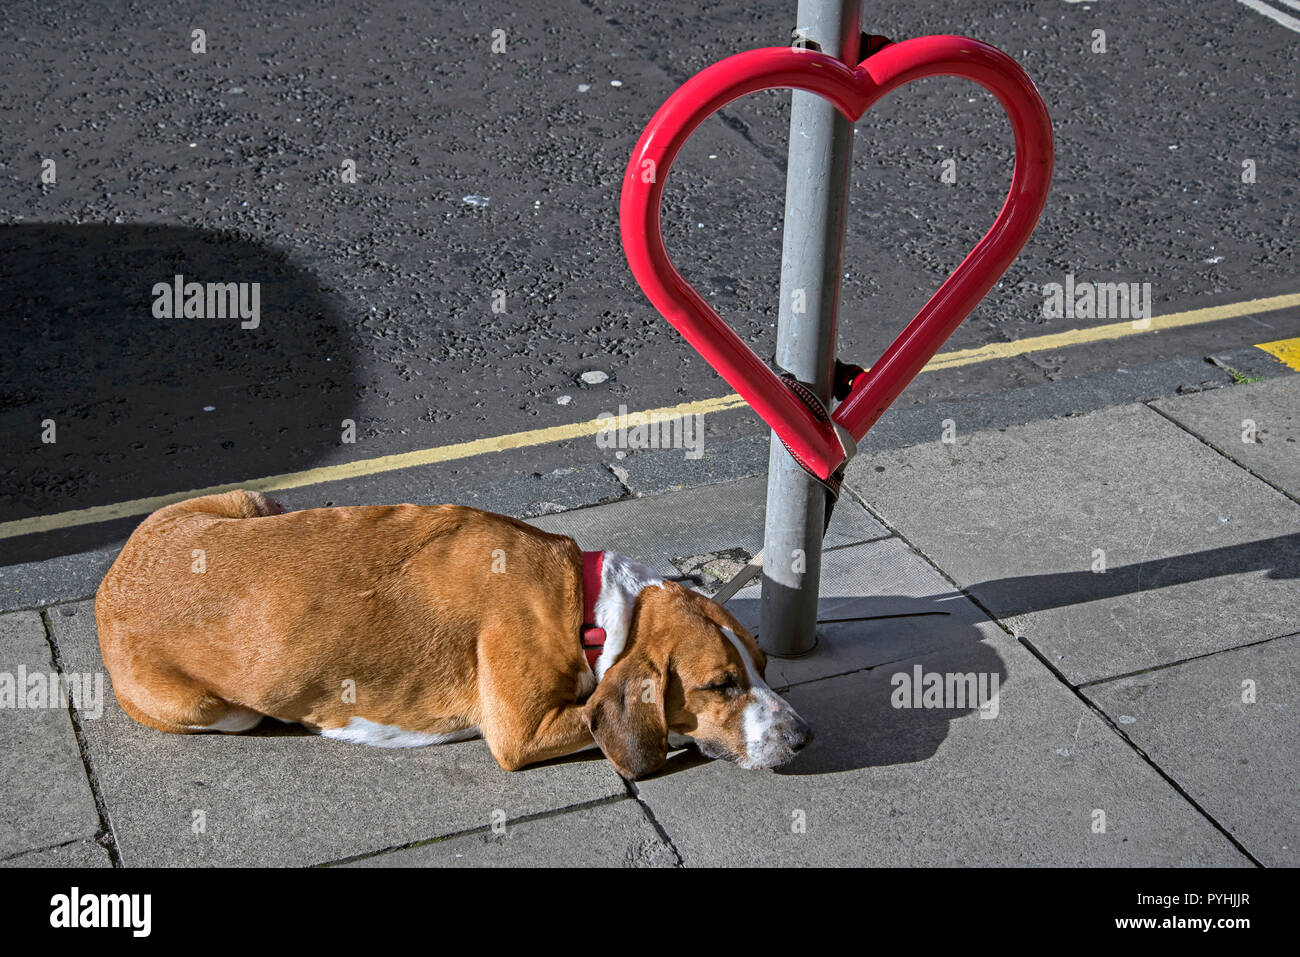 A dog sleeping tied to a heart shaped bicycle stand in Edinburgh. - Stock Image